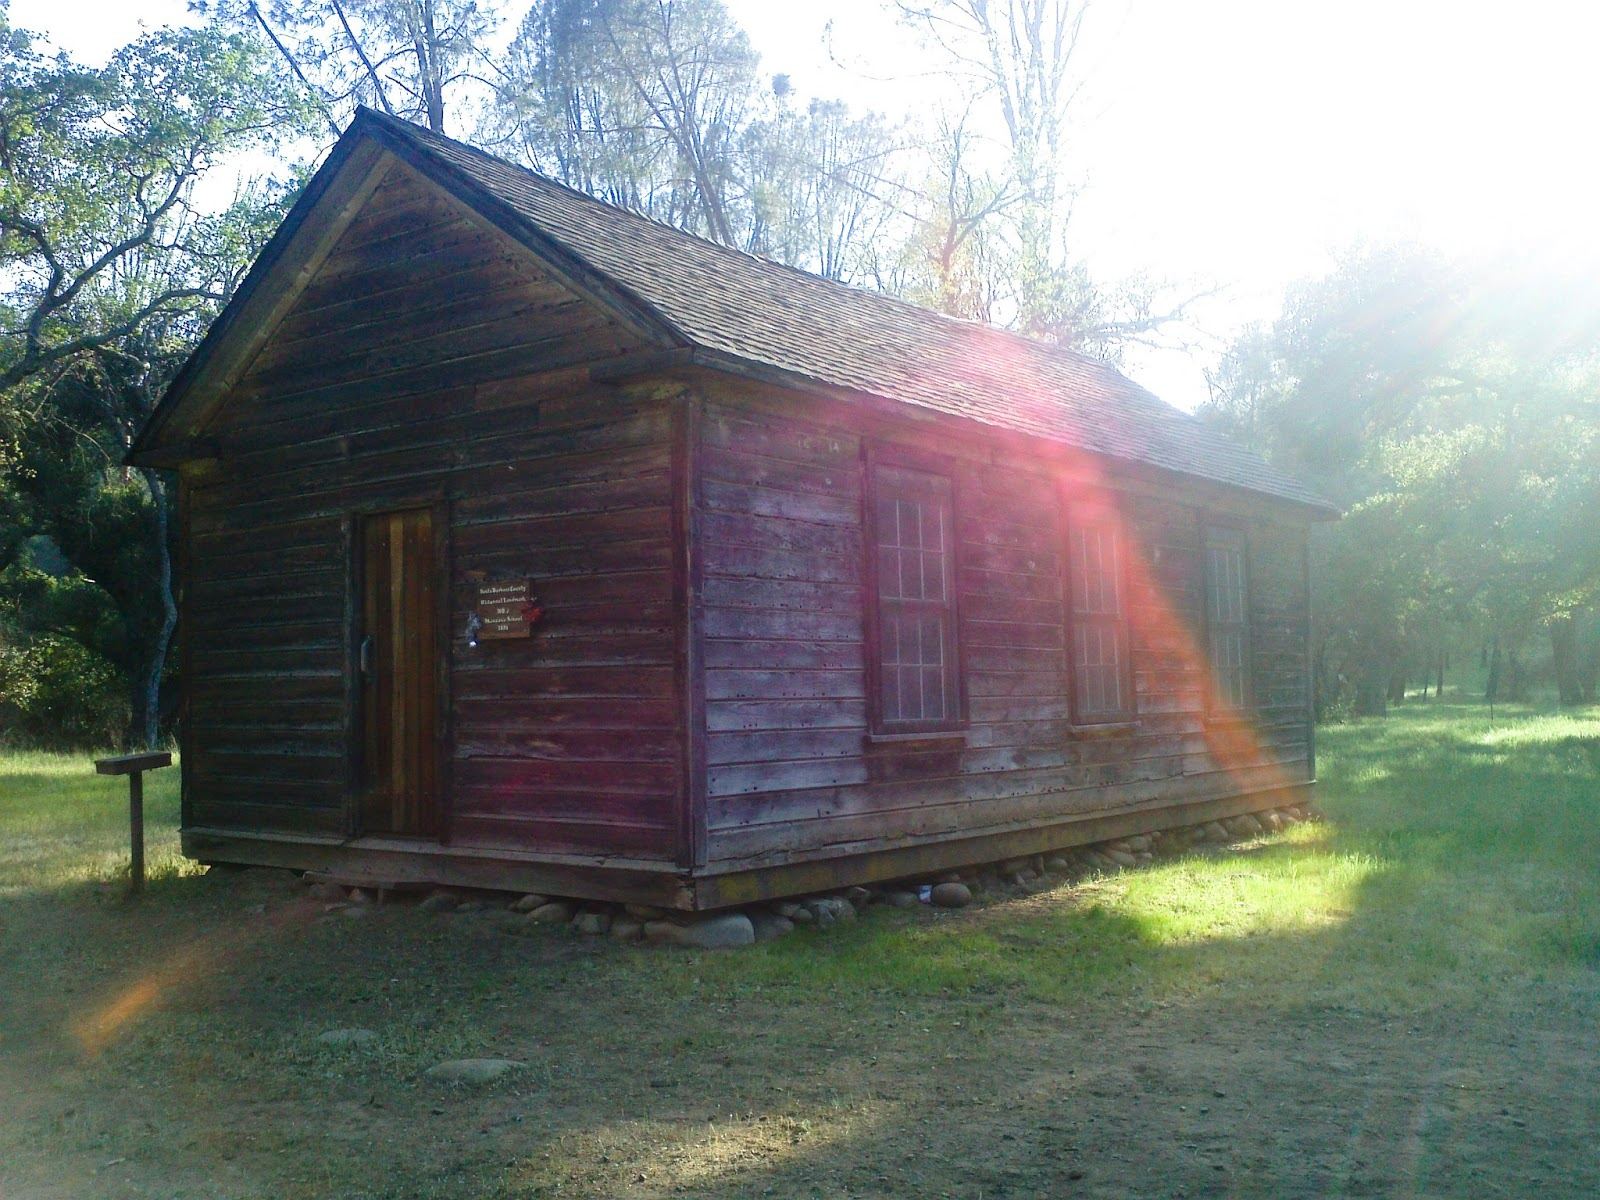 Manzana School House Was Built In The Late 1800u0027s For The Residents  Presiding In The Area. The Trail Leads Pass Old Structures, Grave Yards,  Farm Land, ...